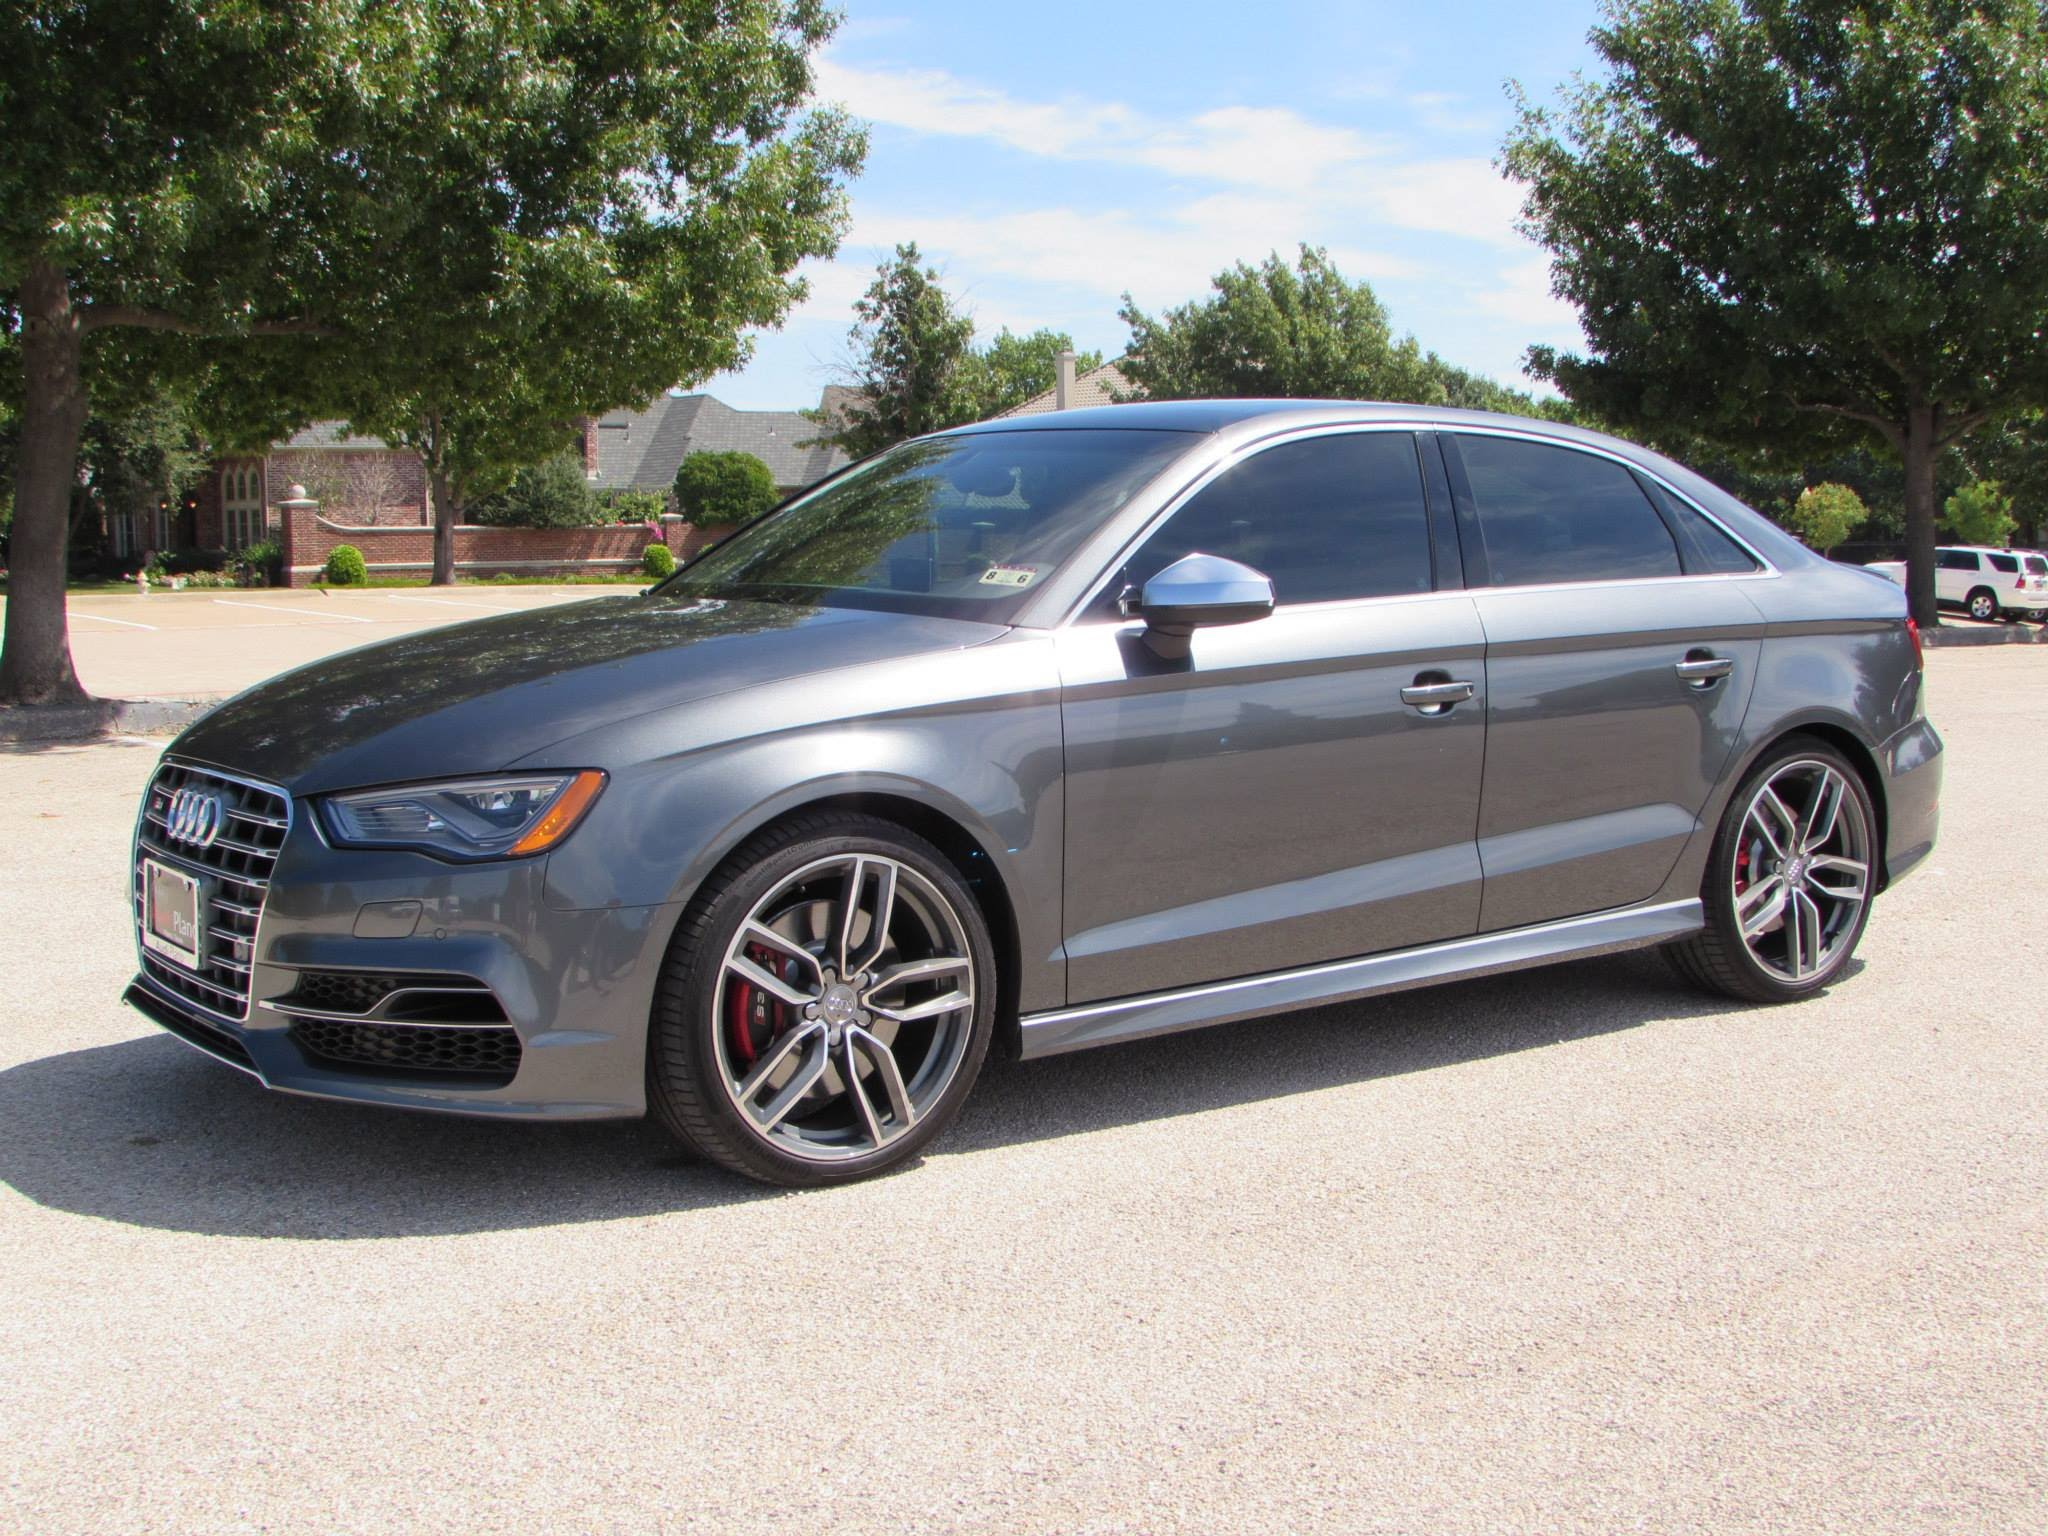 bought a used car over the internet from 600 miles away jim ellis audi marietta